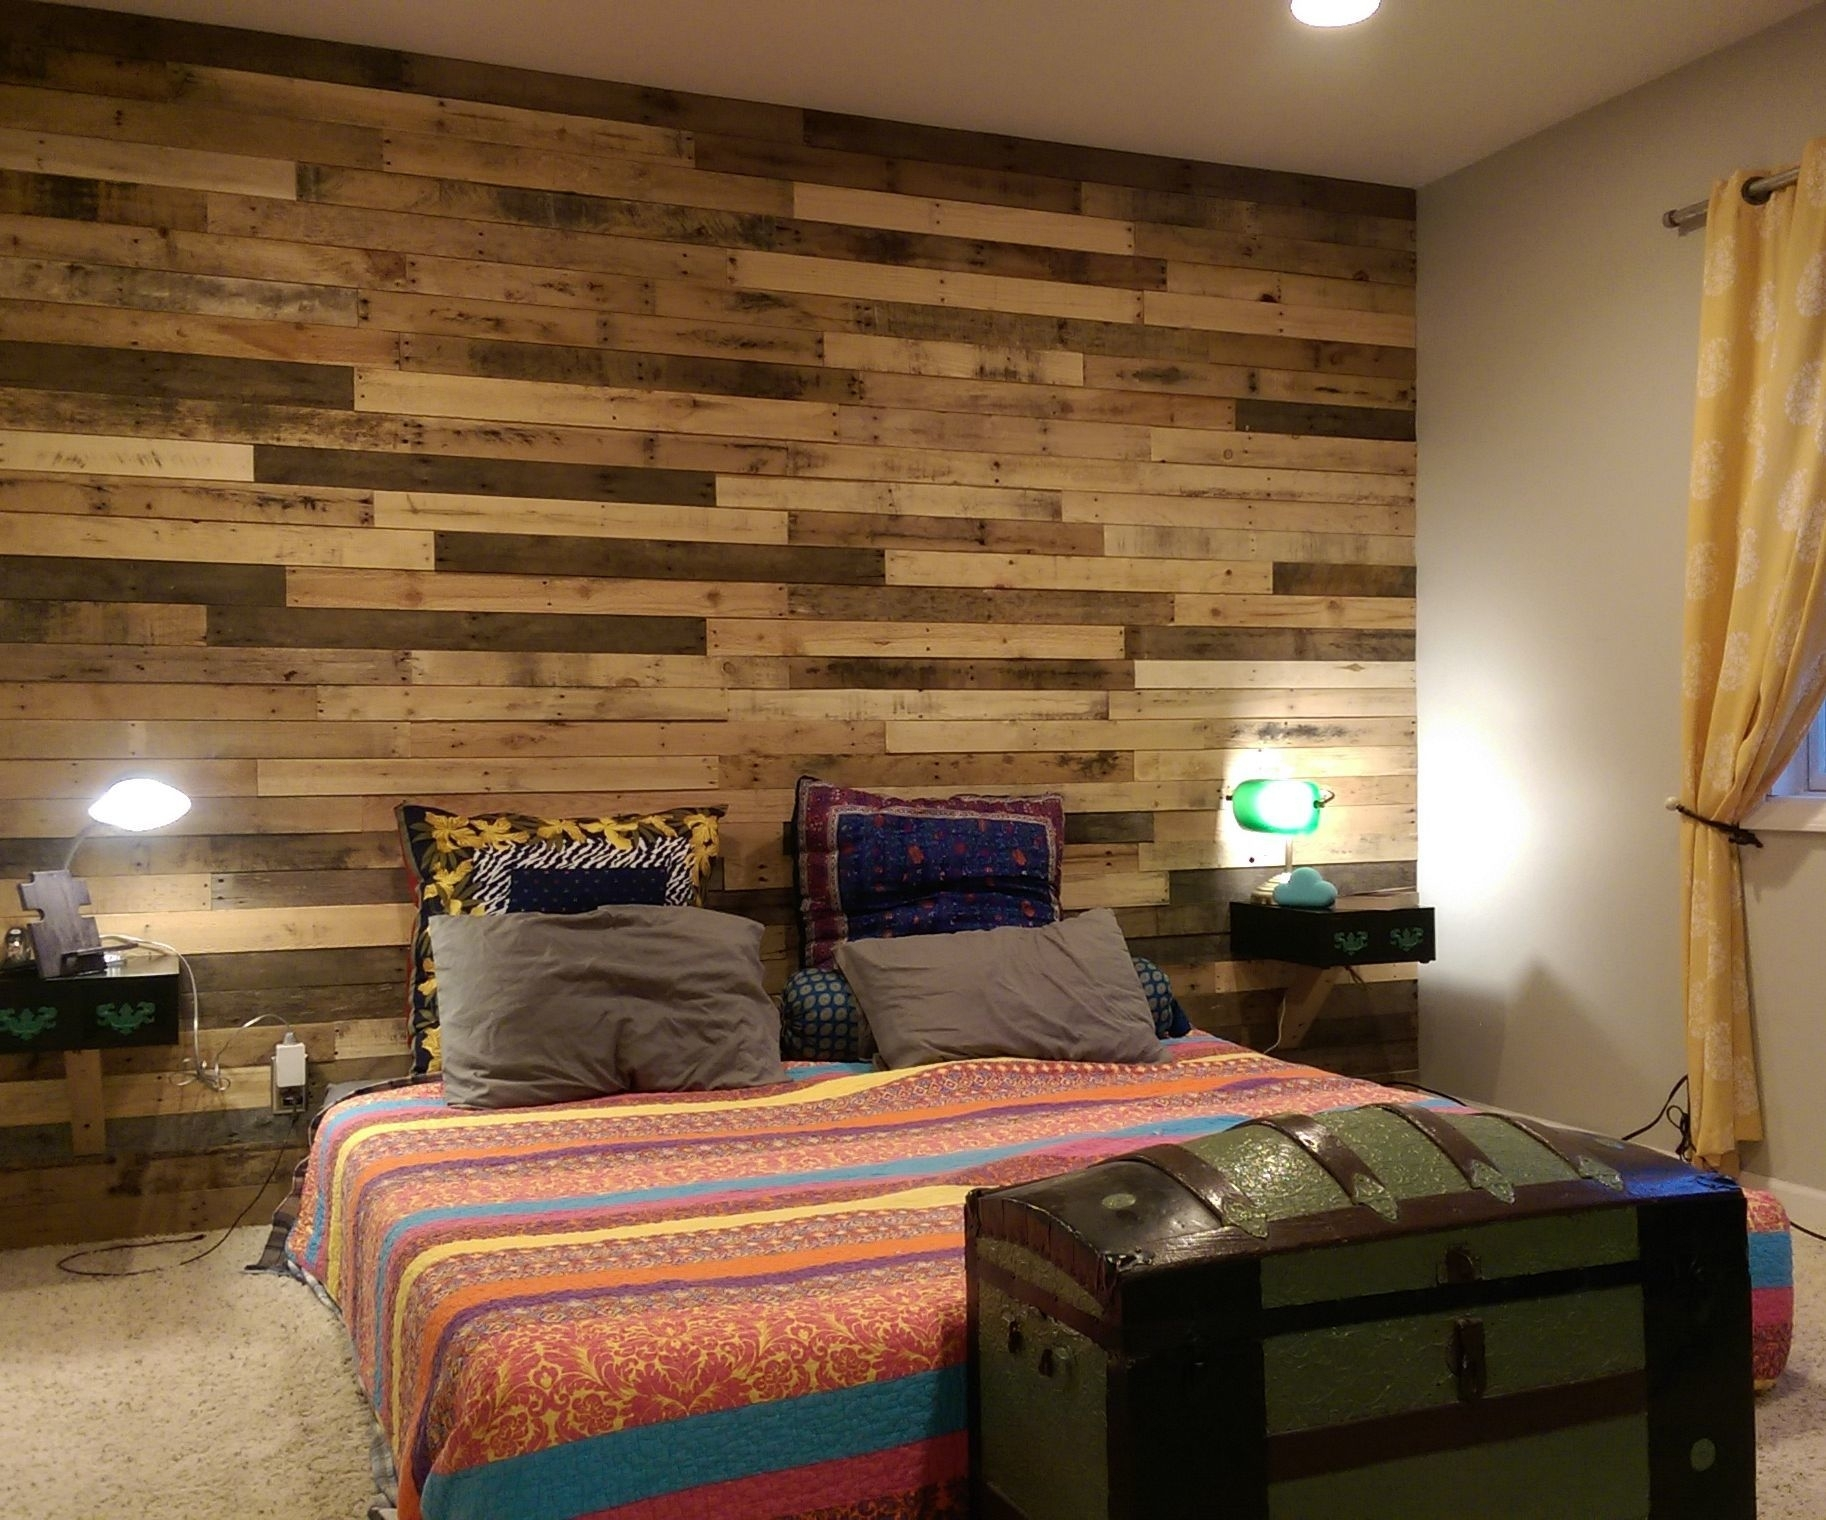 Pallet Accent Wall: 4 Steps (with Pictures) Pertaining To 2018 Wall Accents With Pallets (Gallery 1 of 15)